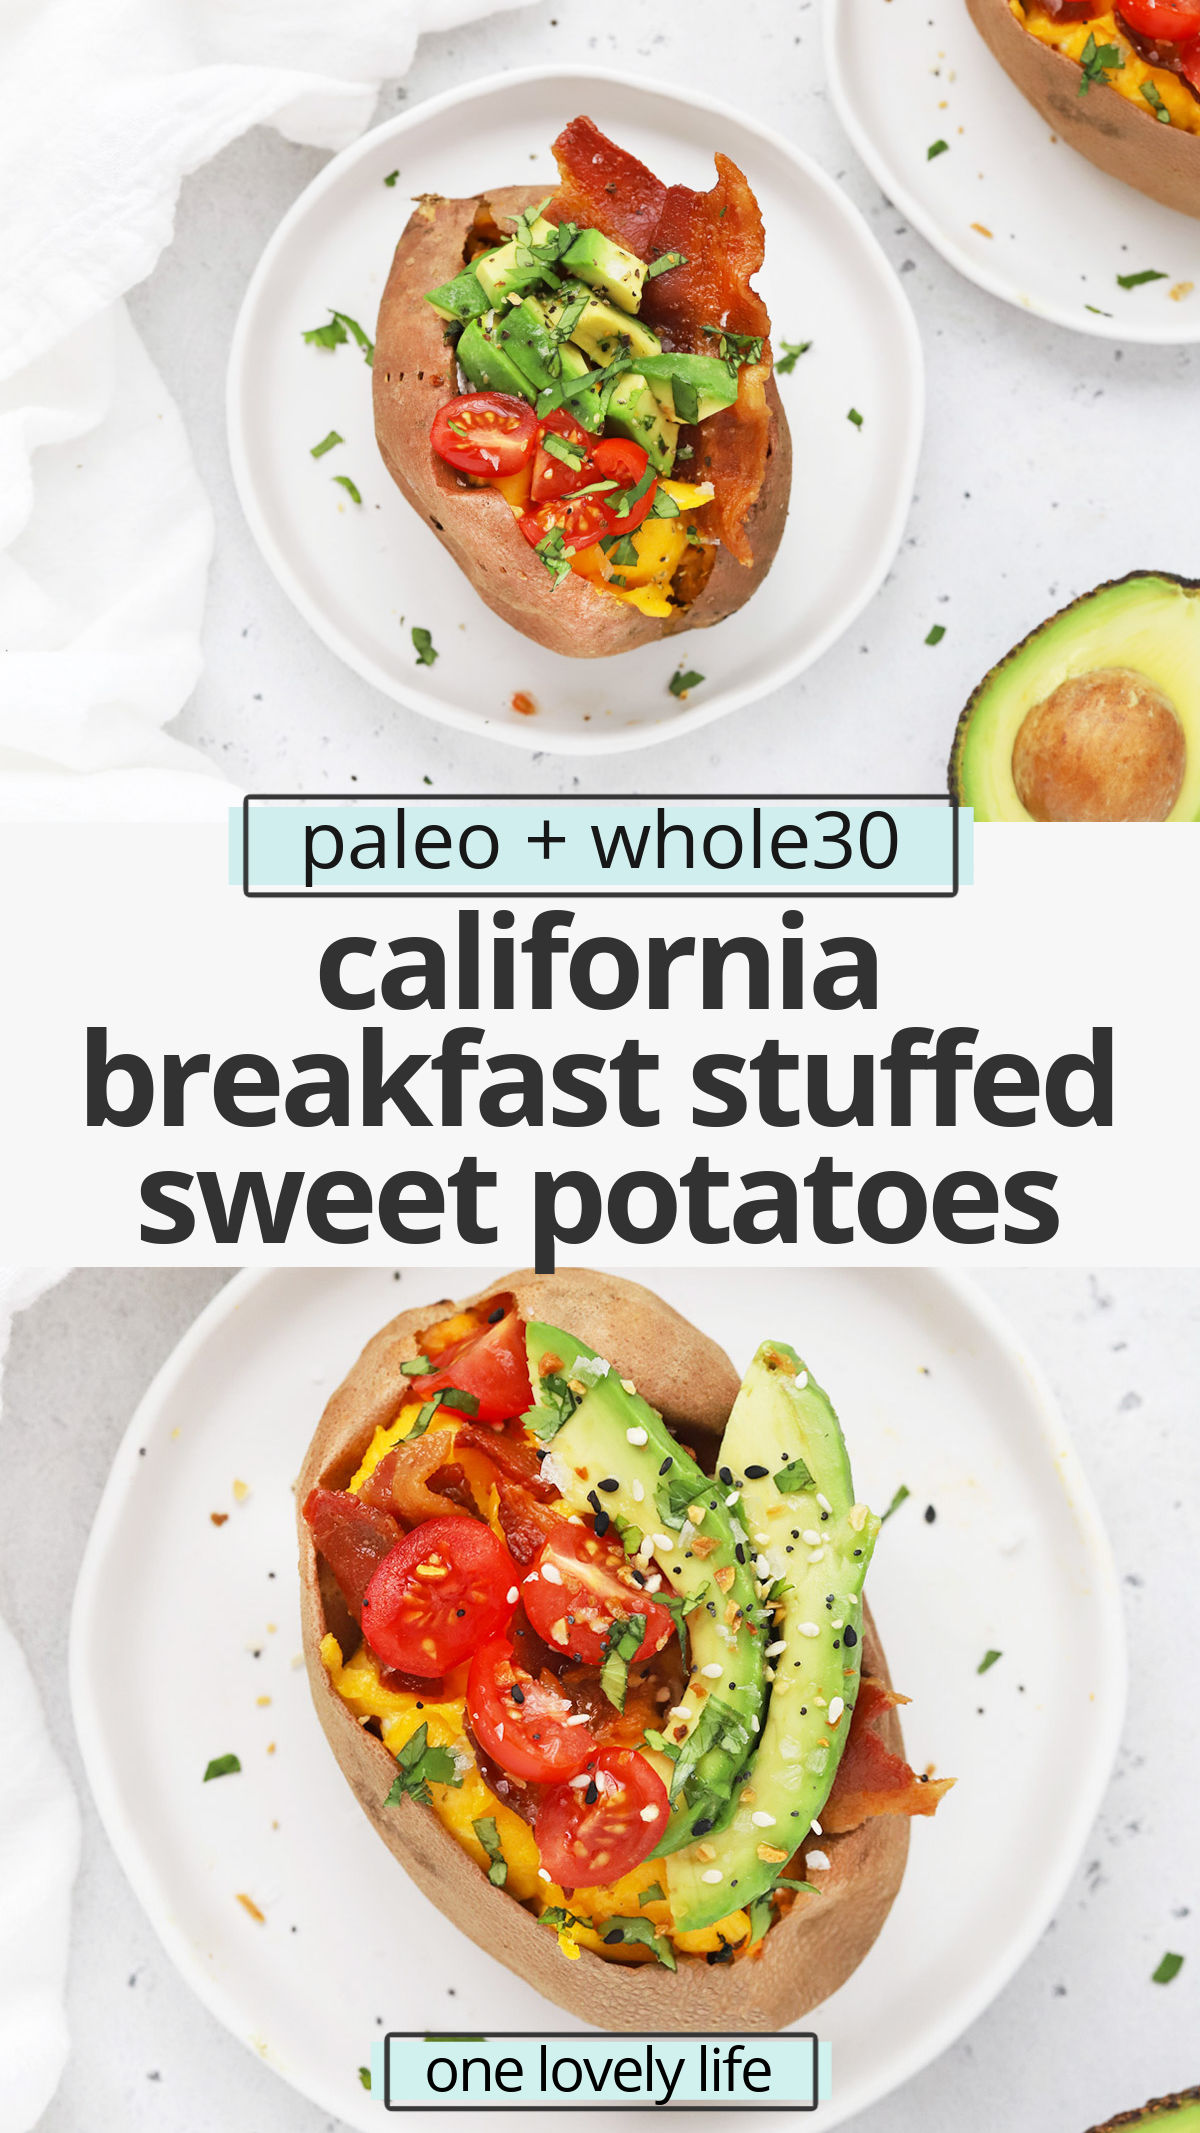 California Breakfast Stuffed Sweet Potatoes - This savory breakfast is loaded with goodies for a delicious start to the day! (Paleo, Whole30) // Whole30 breakfast // paleo breakfast // healthy breakfast // breakfast stuffed sweet potato recipe // gluten-free // stuffed sweet potatoes #breakfast #paleo #whole30 #healthy